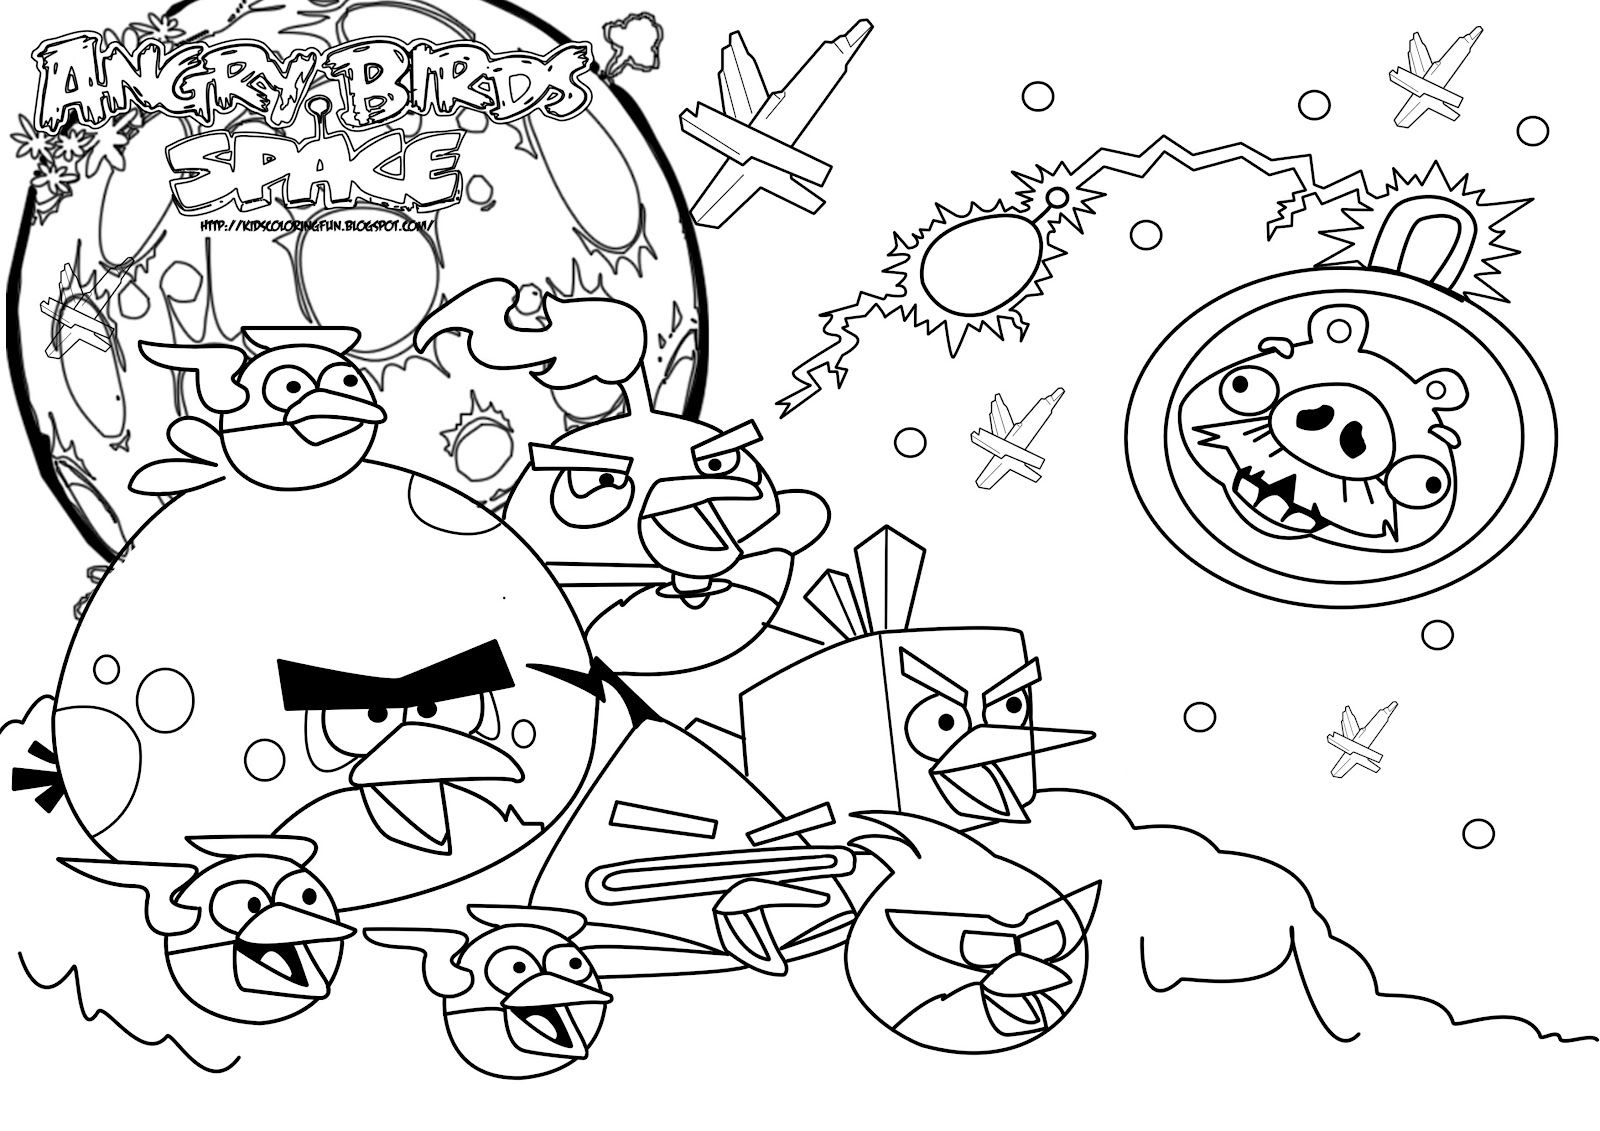 Angry Birds Colouring Pagesangry Bird Coloring Pages